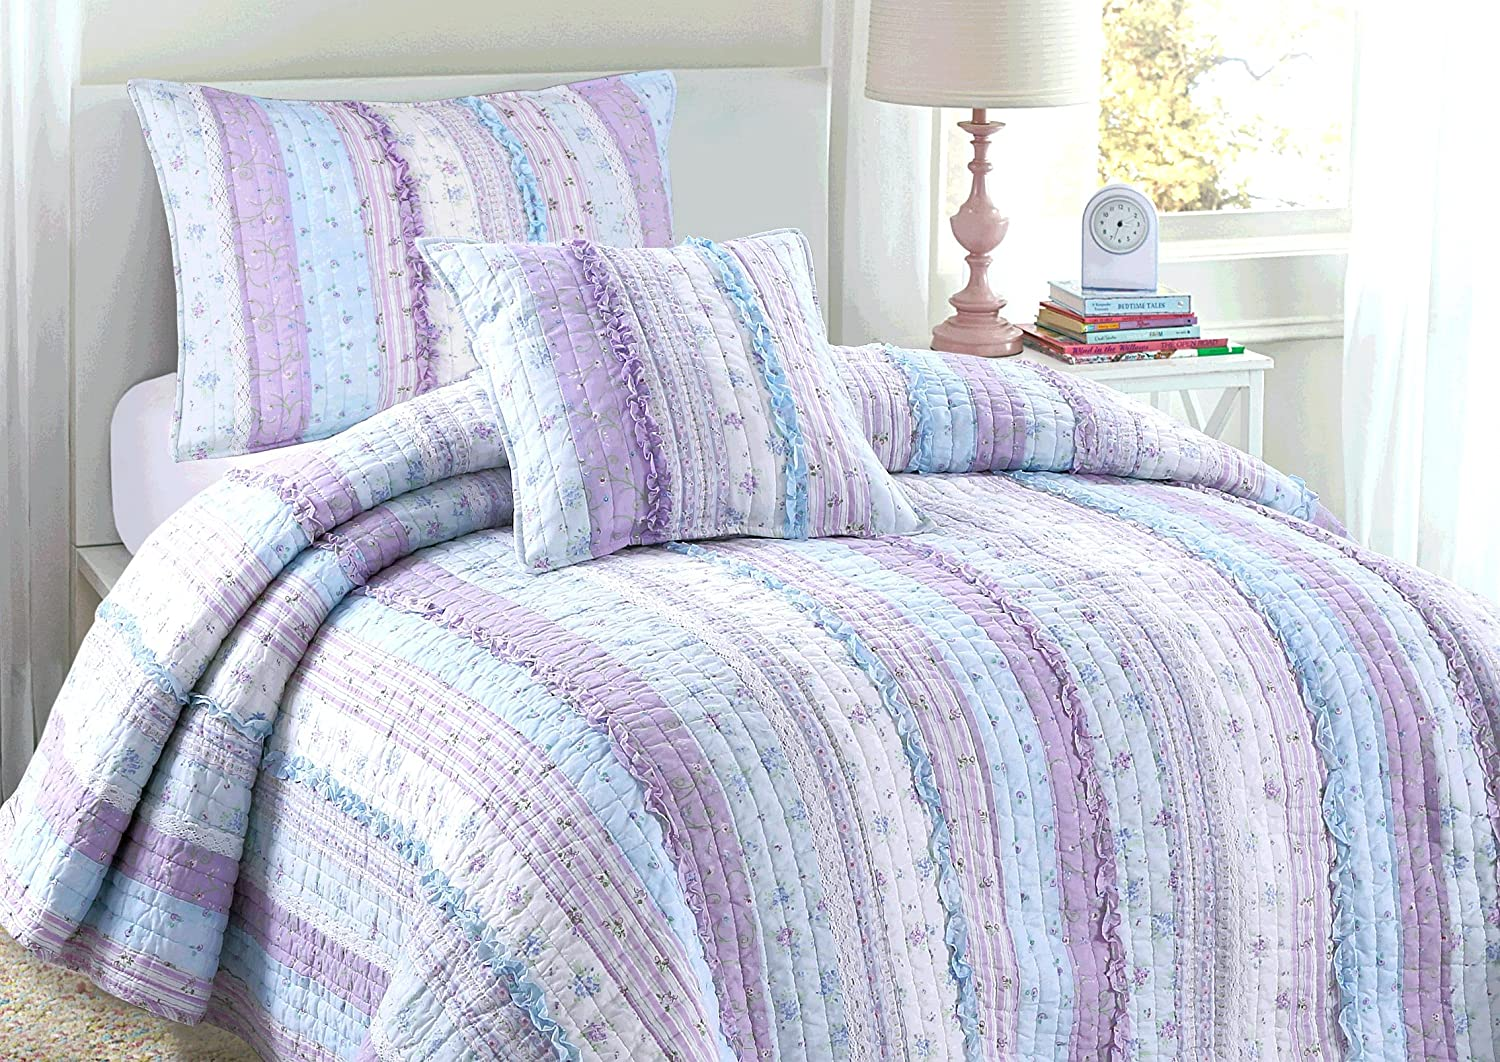 Cozy Line Home Fashions Raelynn Lavender Lace Orchid Light Purple Blue Flower Print Stripe Cotton 3D Bedding Quilt Set, Reversible Coverlet, Bedspread for Girls Women (Queen - 3 Piece)